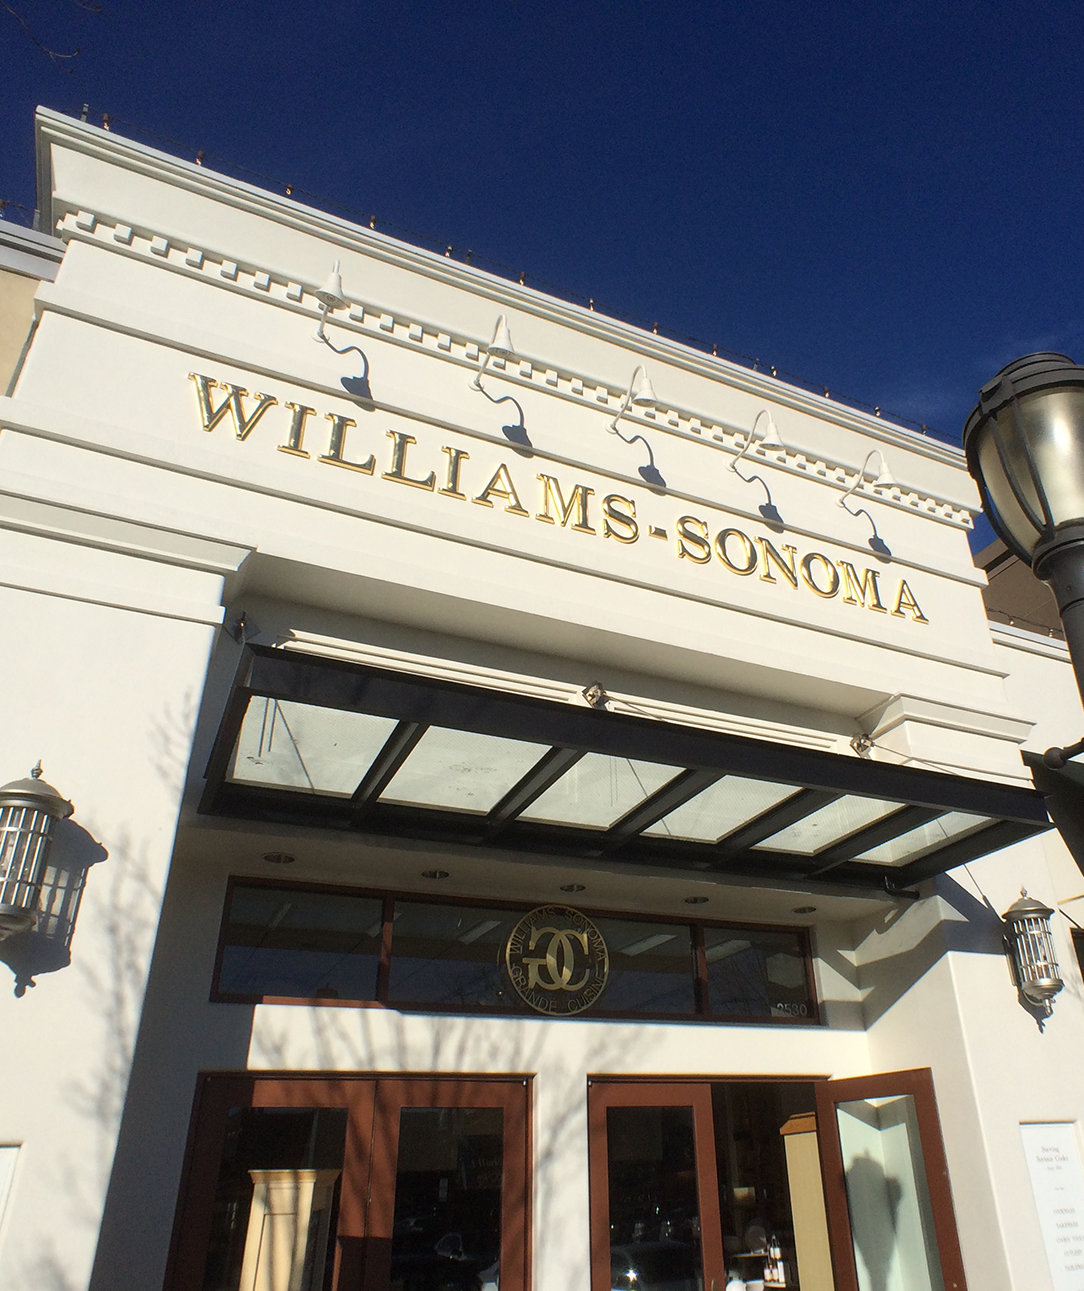 Williams Sonoma Is Hiring Thousands of Work-From-Home Employees This Fall